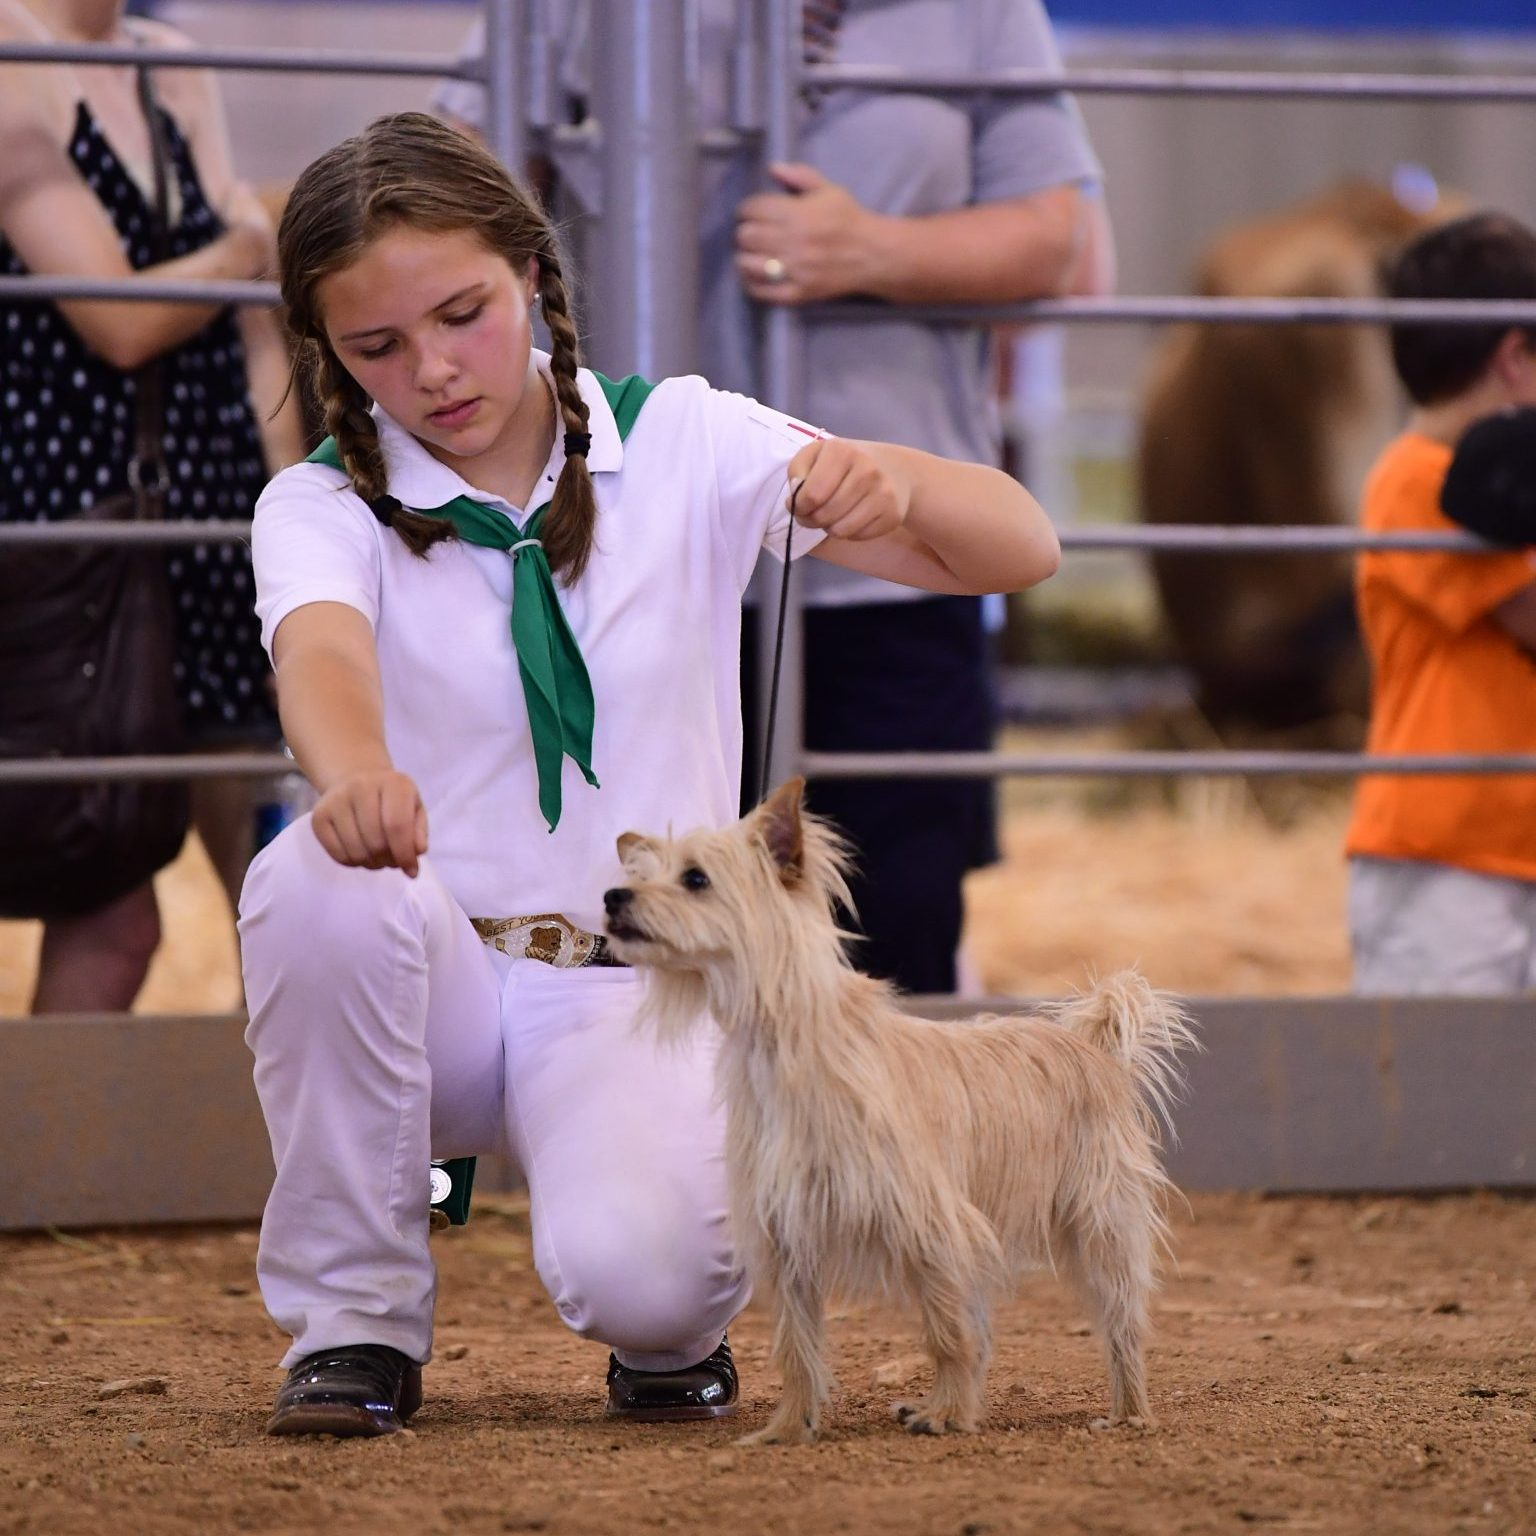 dog and person at dog show